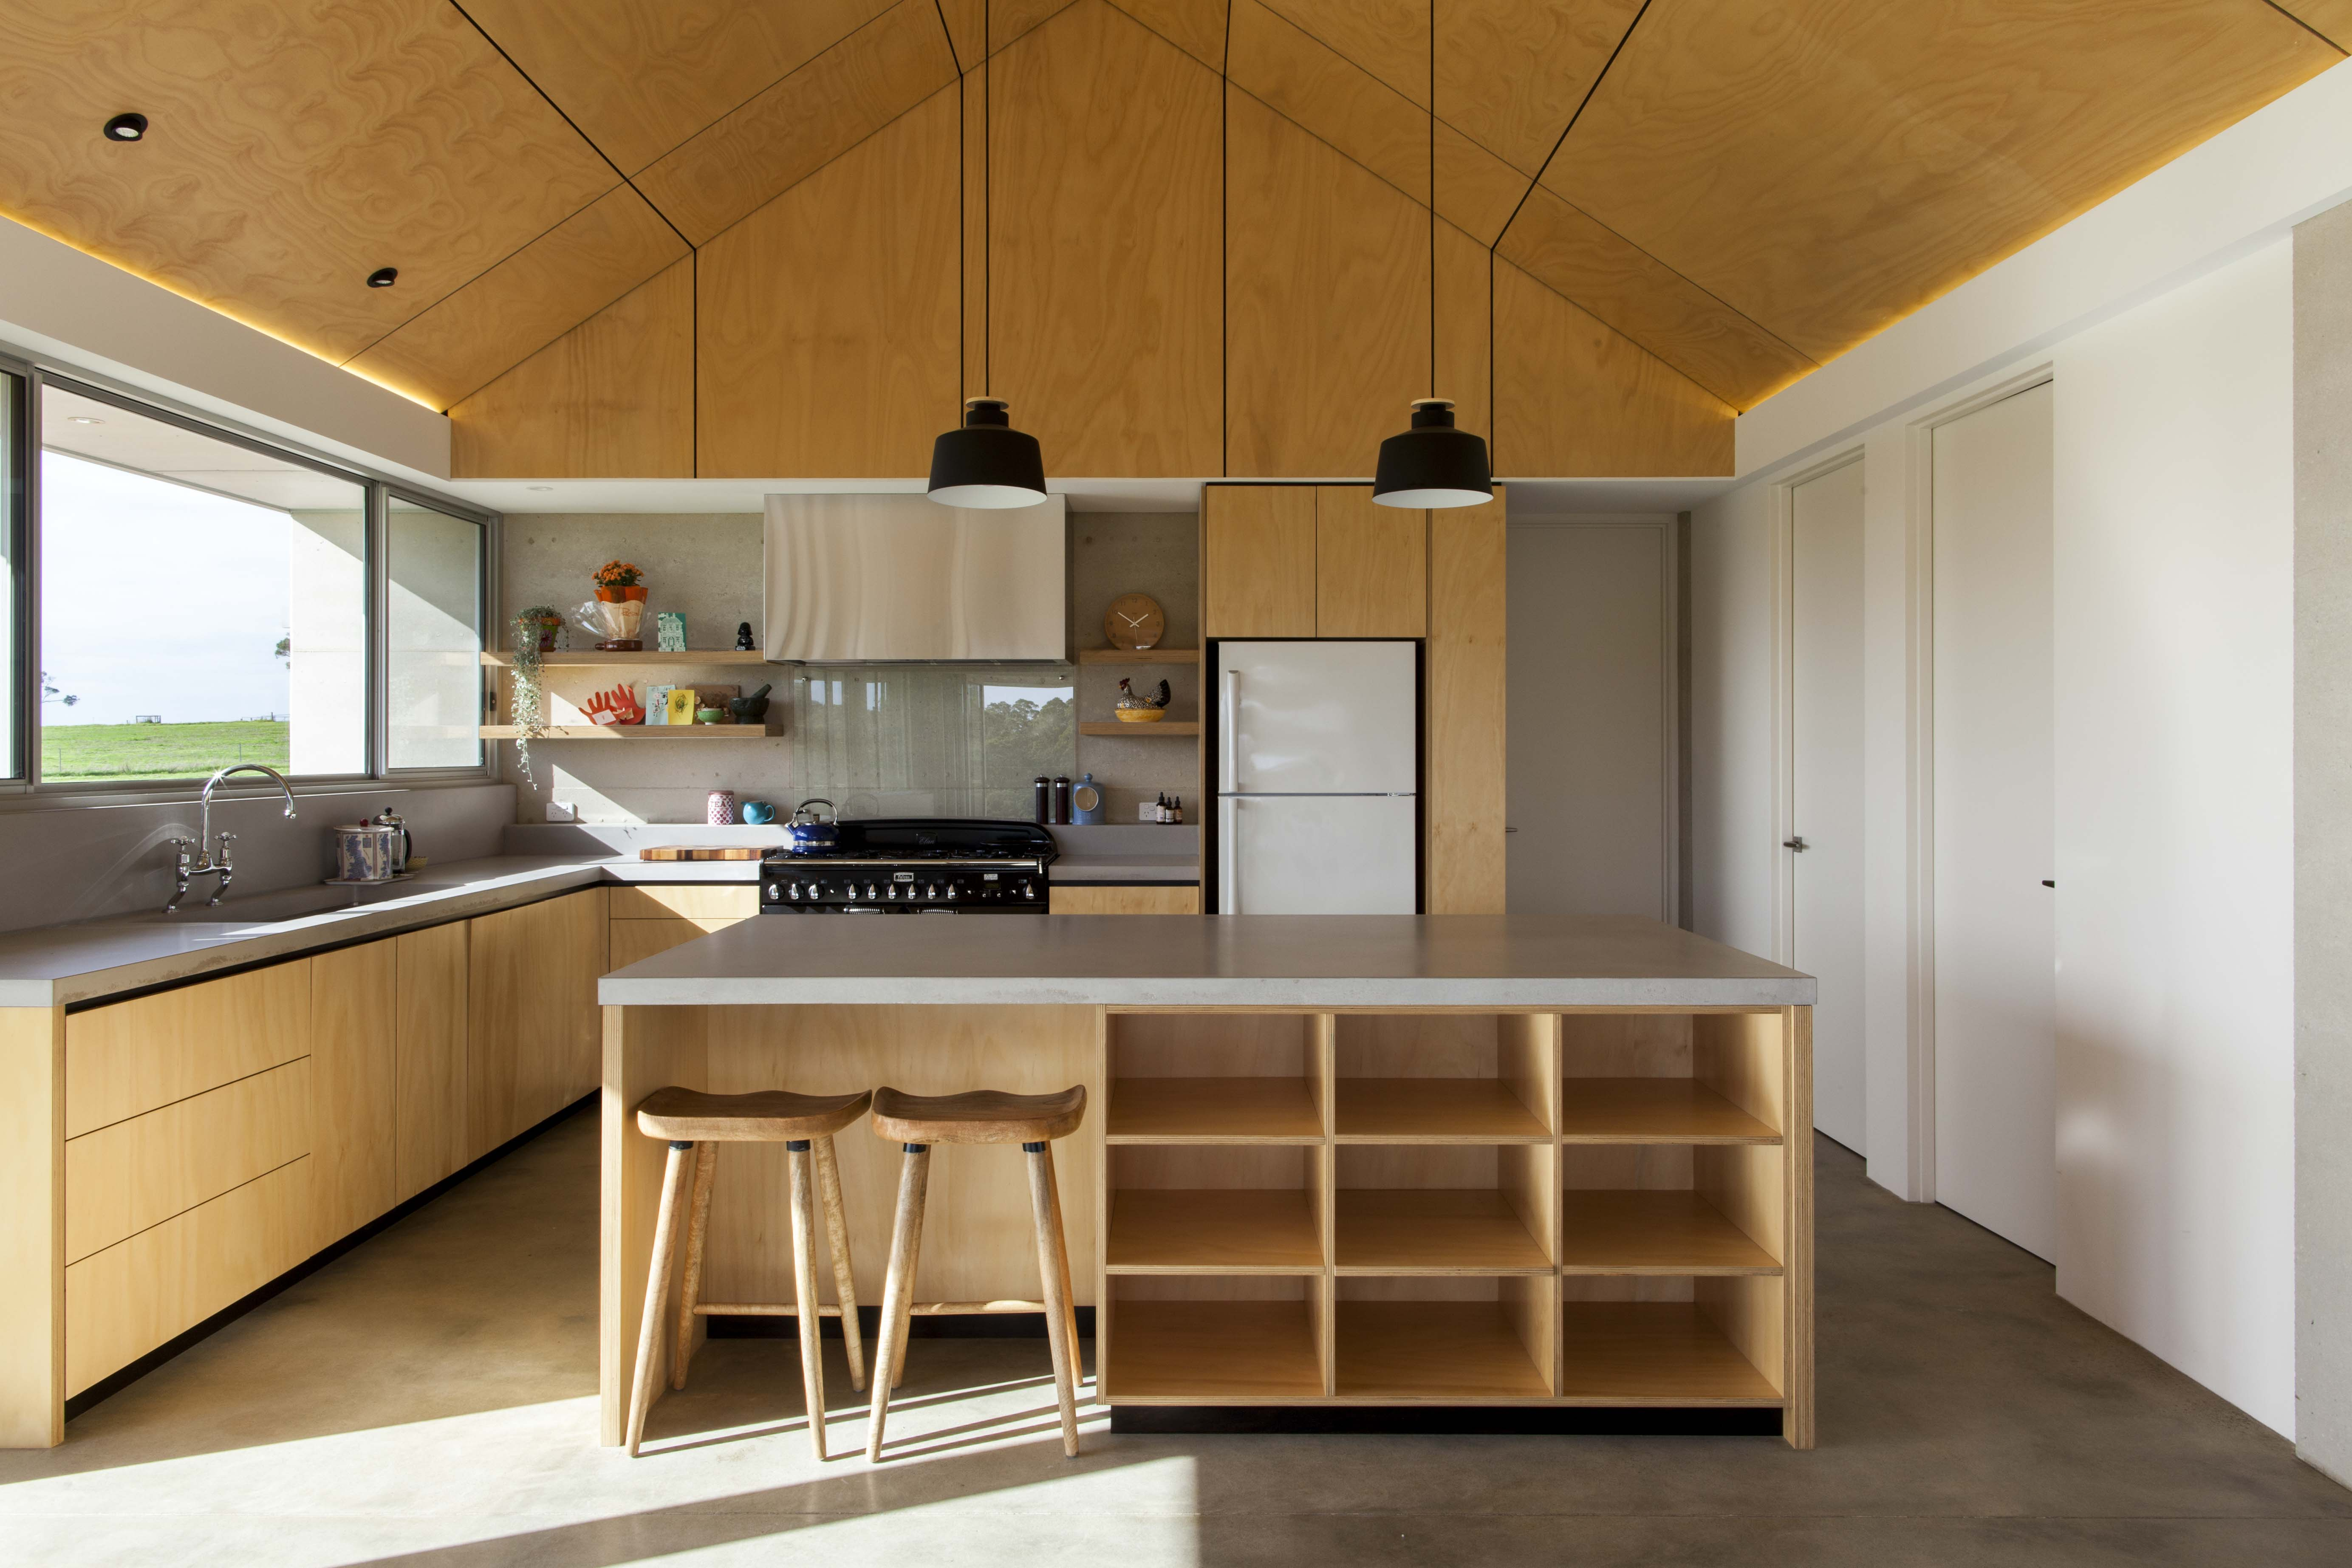 Gallery Of The Farm House By Ehdo Architecture Local Design And Interiors Margaret River, Wa Image 6